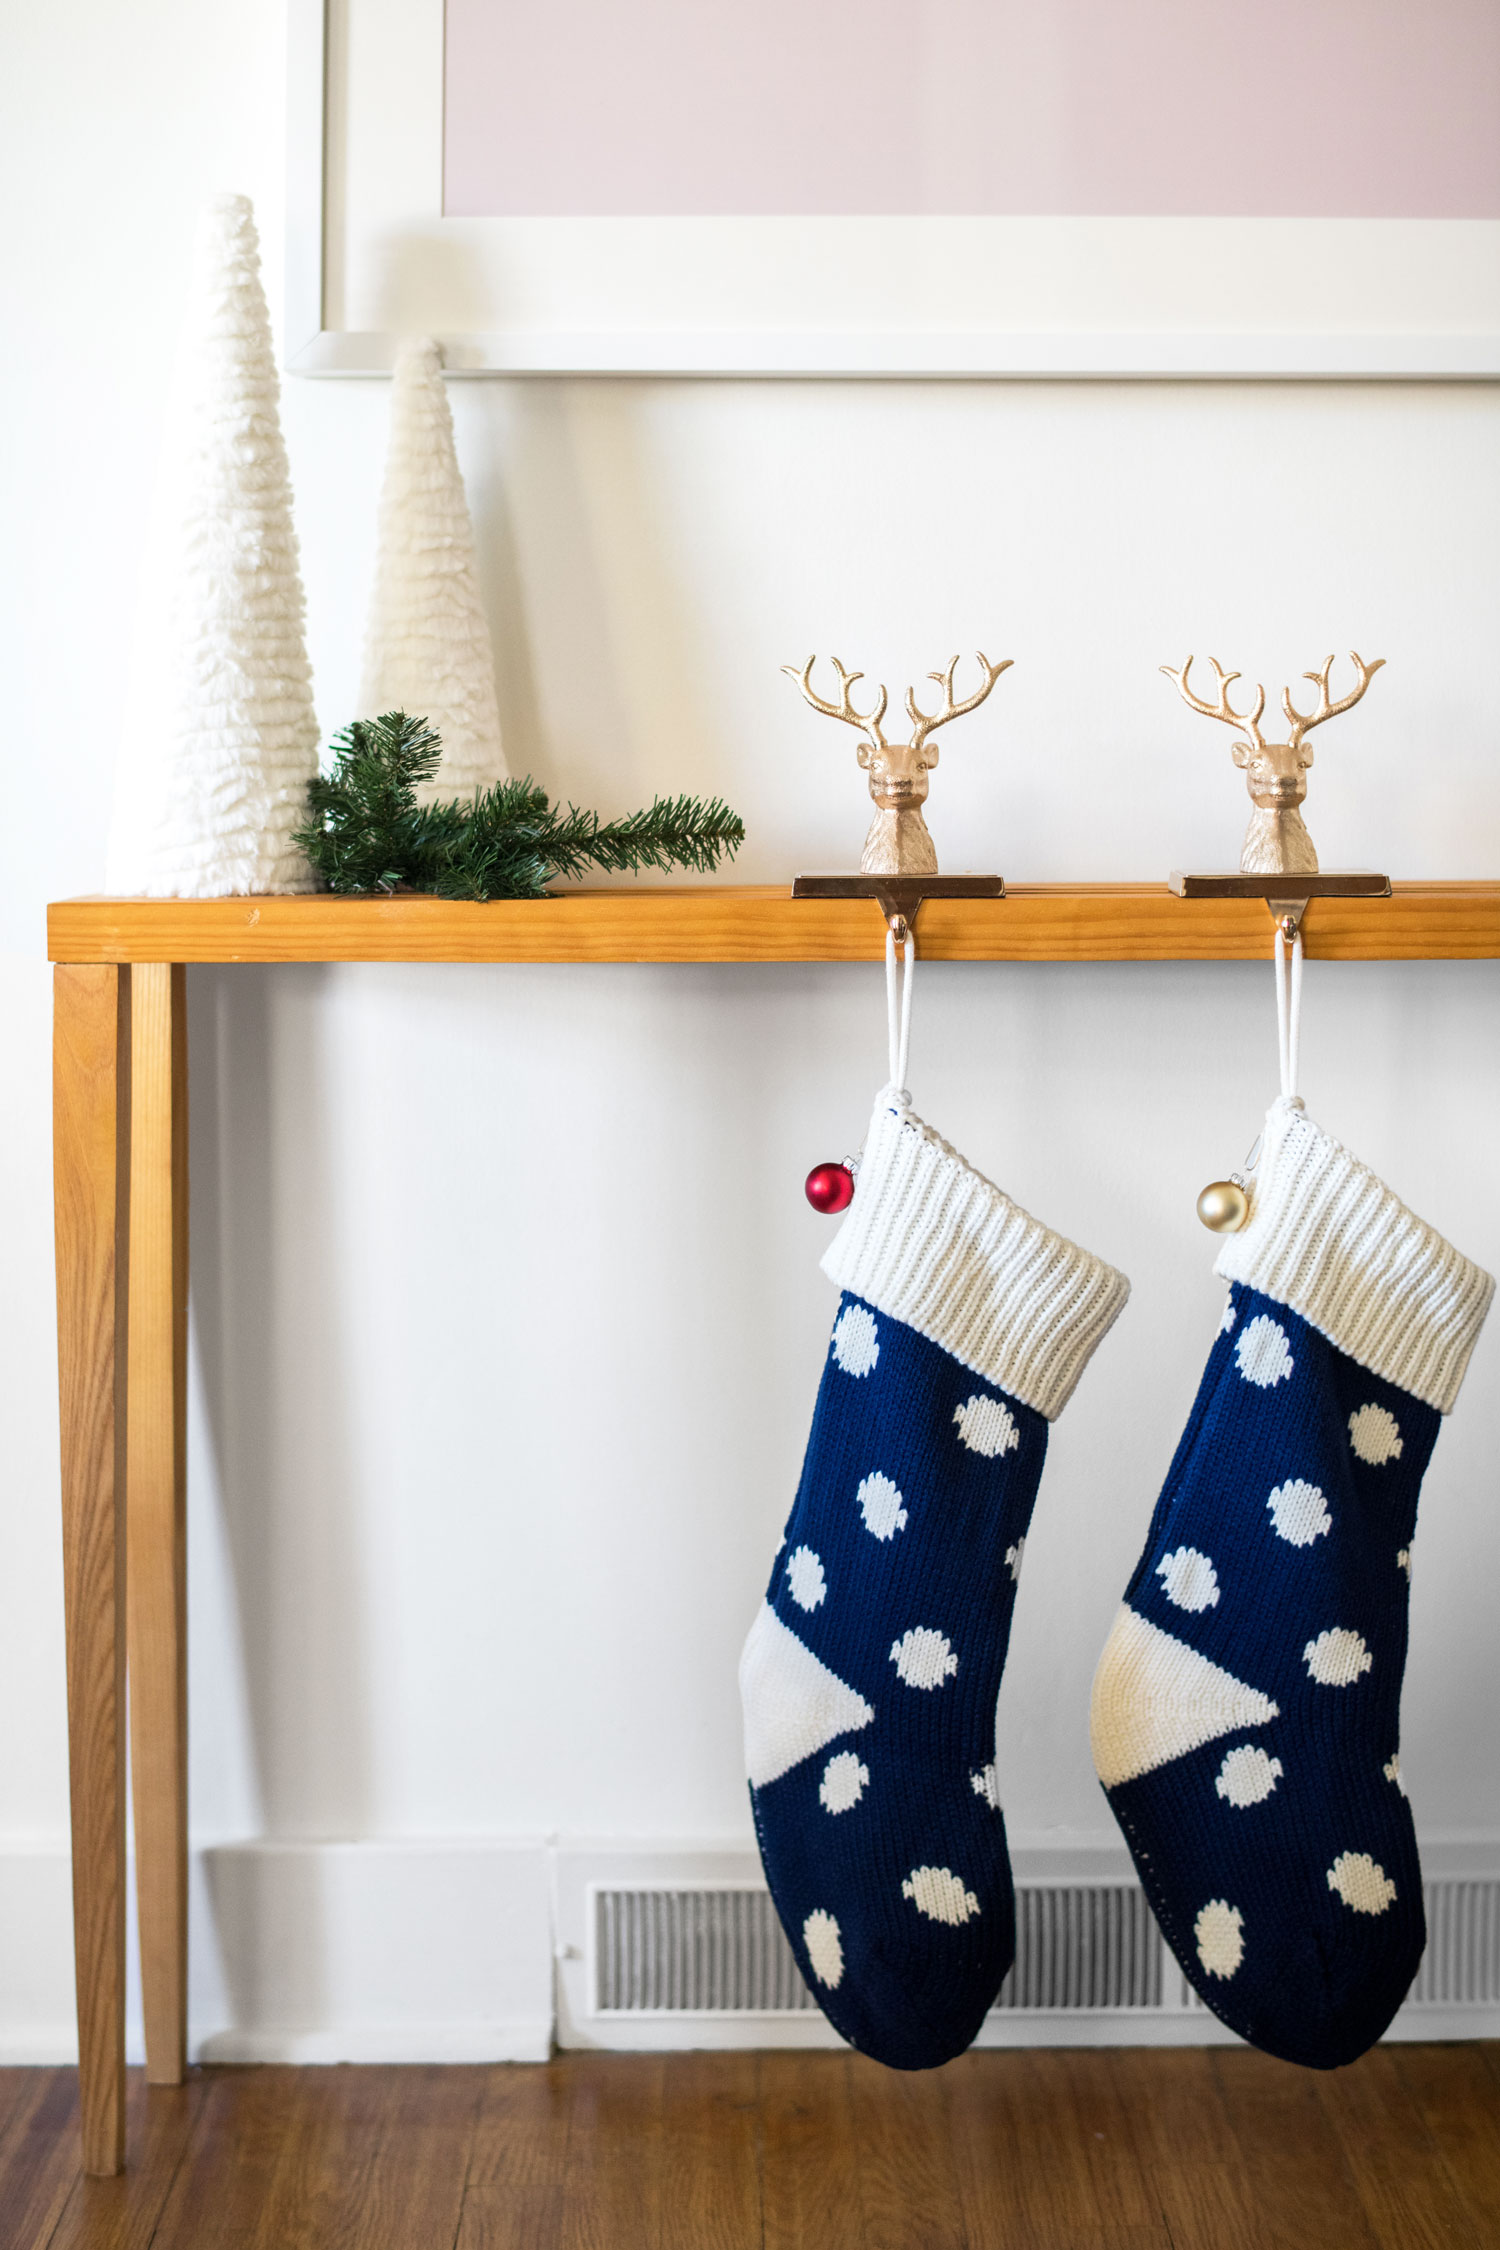 I'm drawn to simple styling when it comes to holiday decor so these white, furry trees and a sprig of faux pine were the perfect touch on this console table. To personalize the stockings, I chose three different colored ornaments and attached them to the sides.